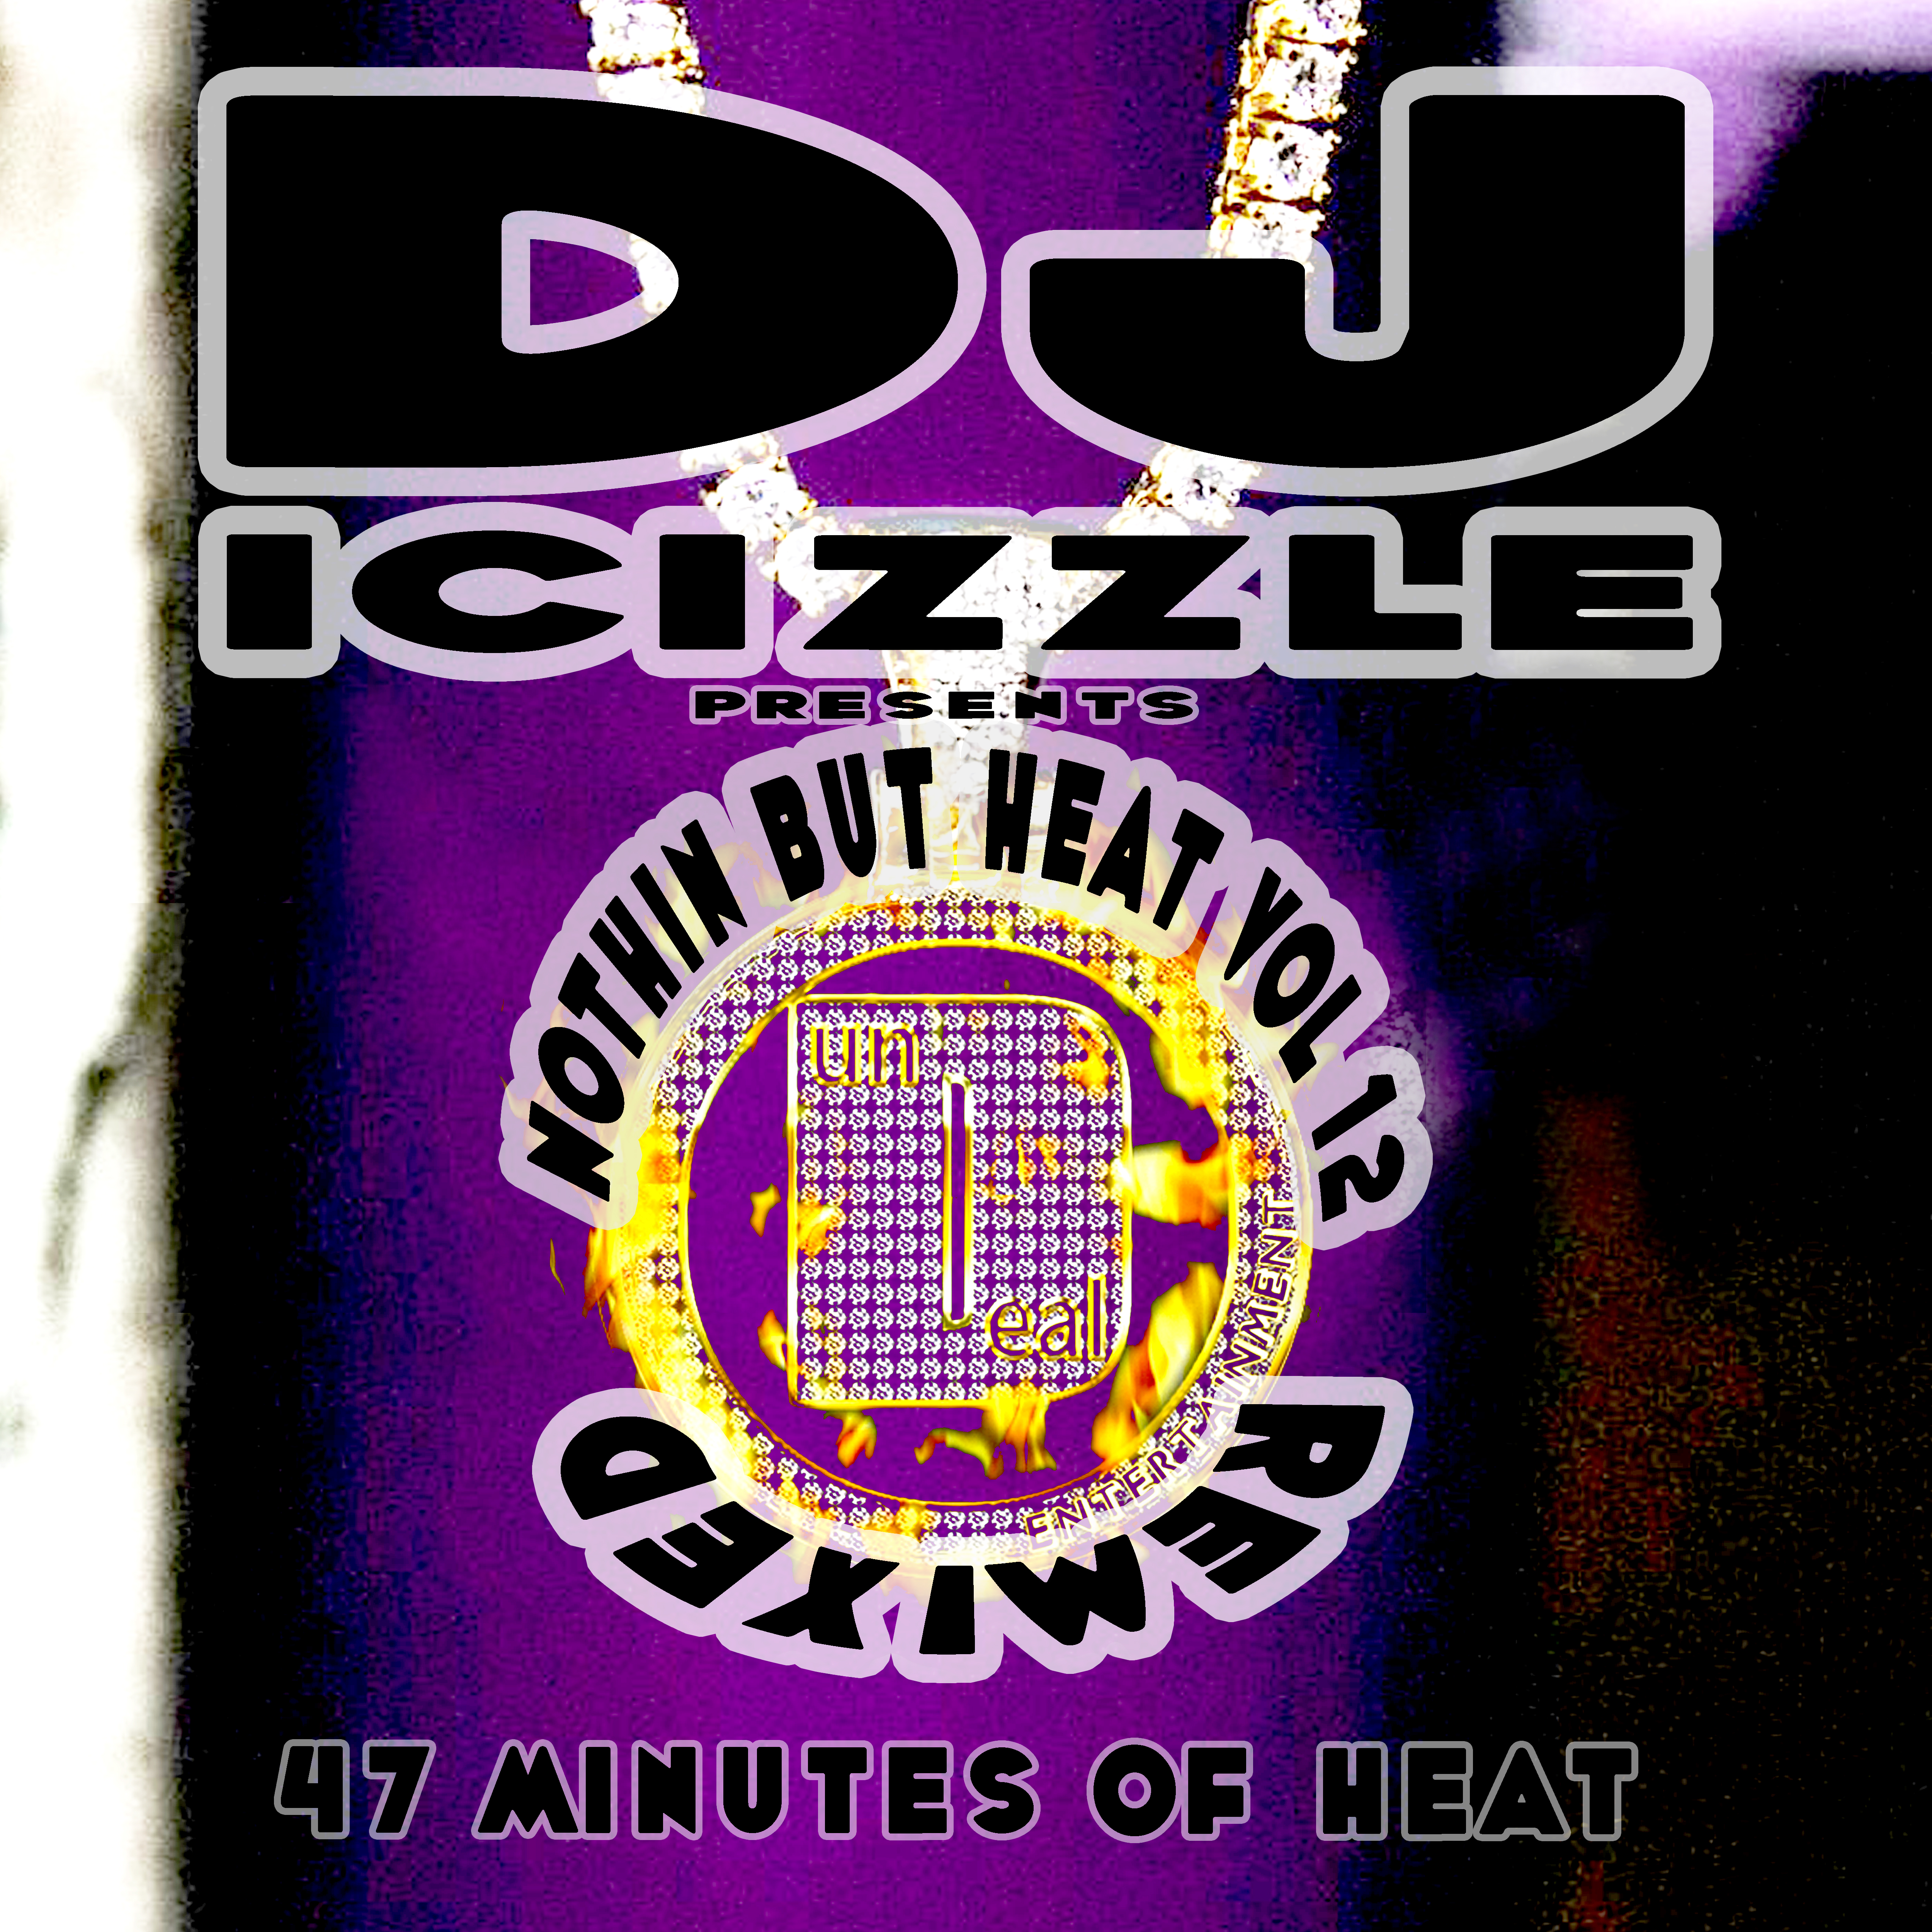 Nothin But Heat Vol 12 Cover - DJ iCizzle